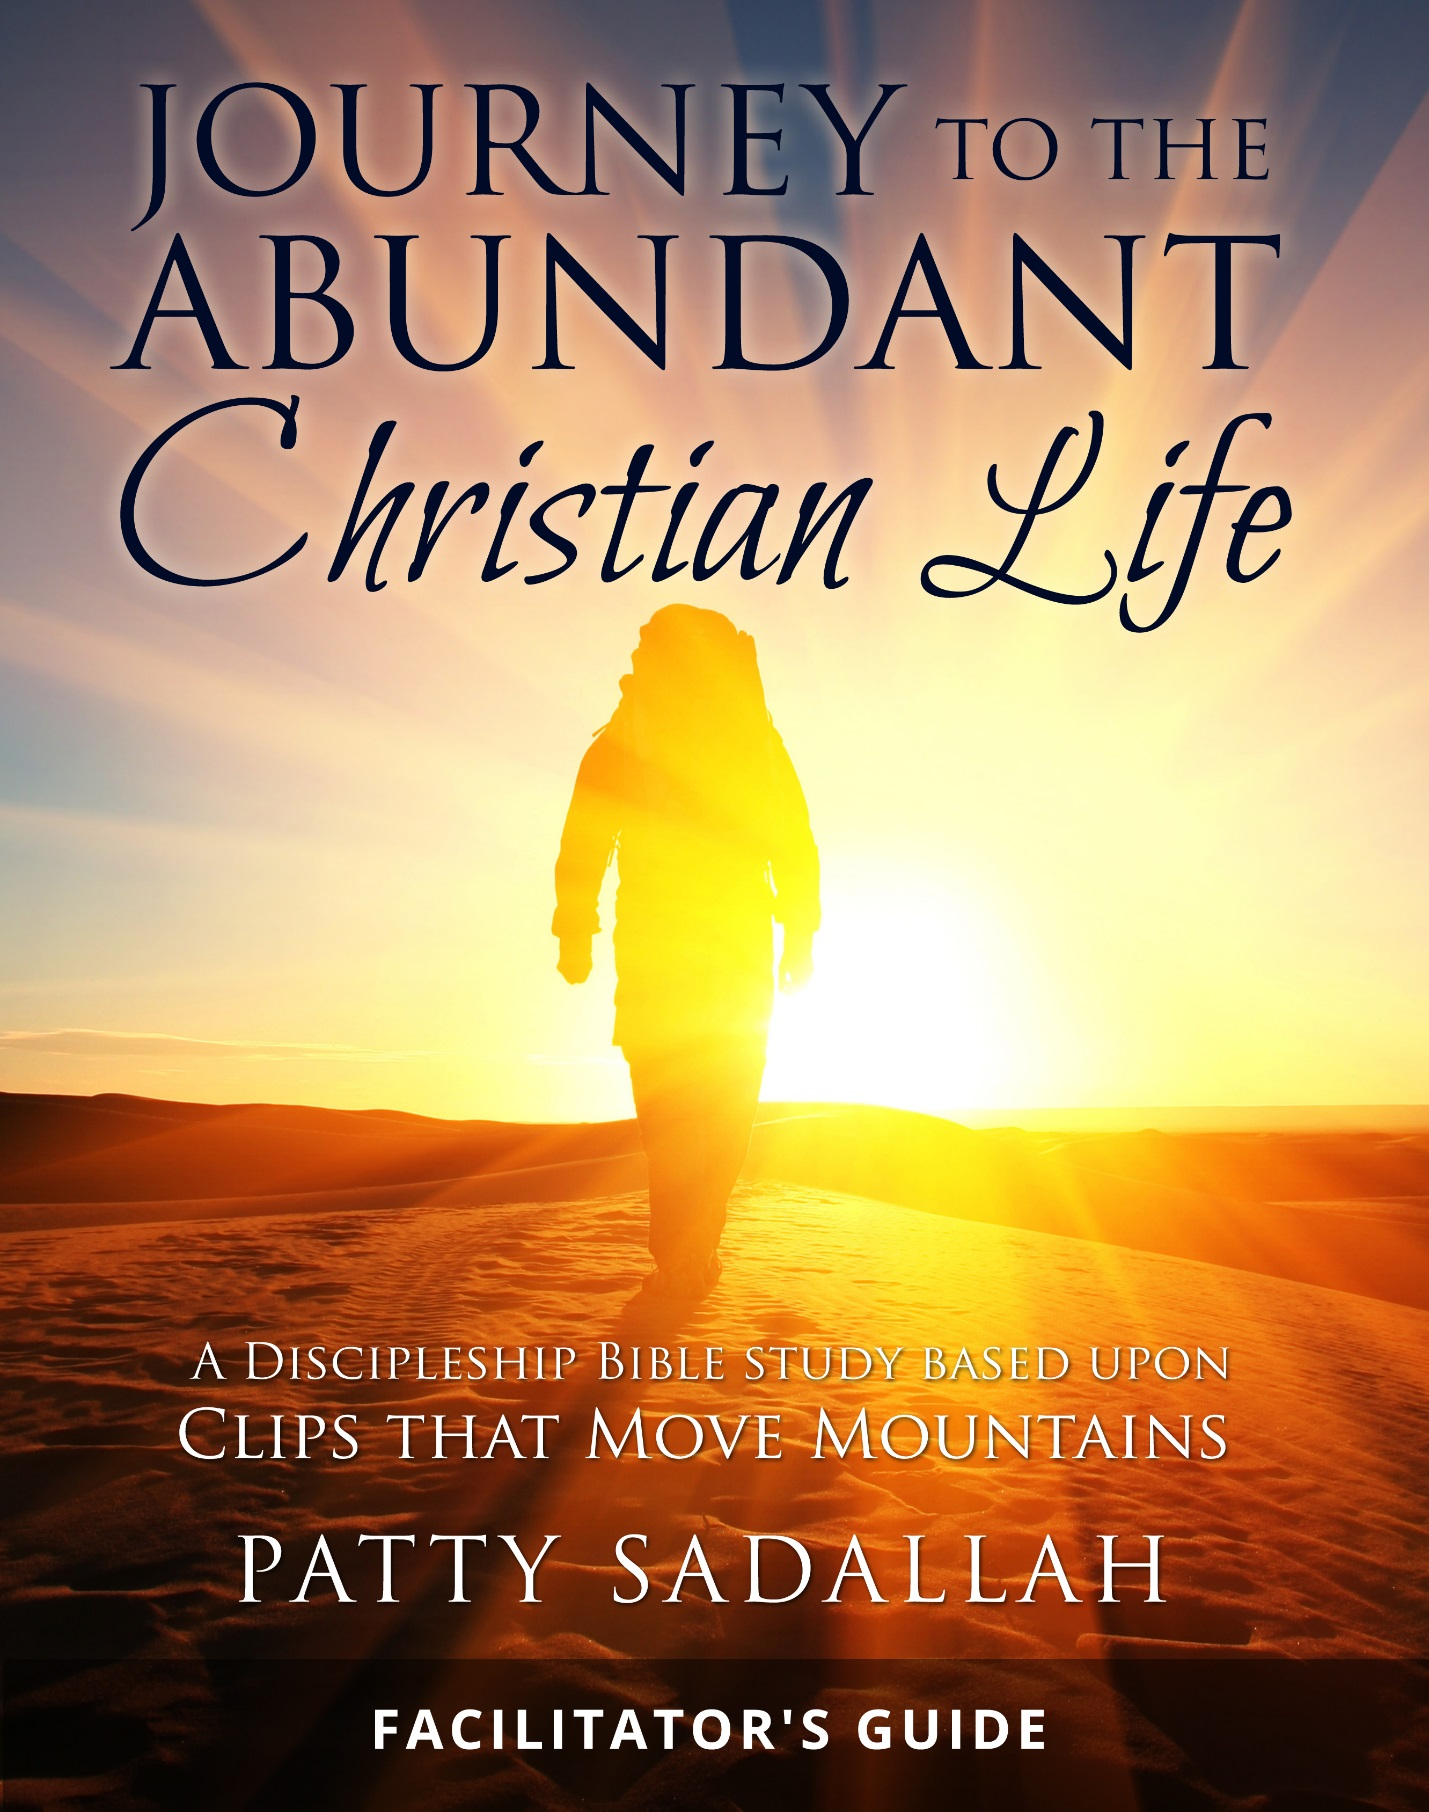 Journey to the Abundant Christian Life